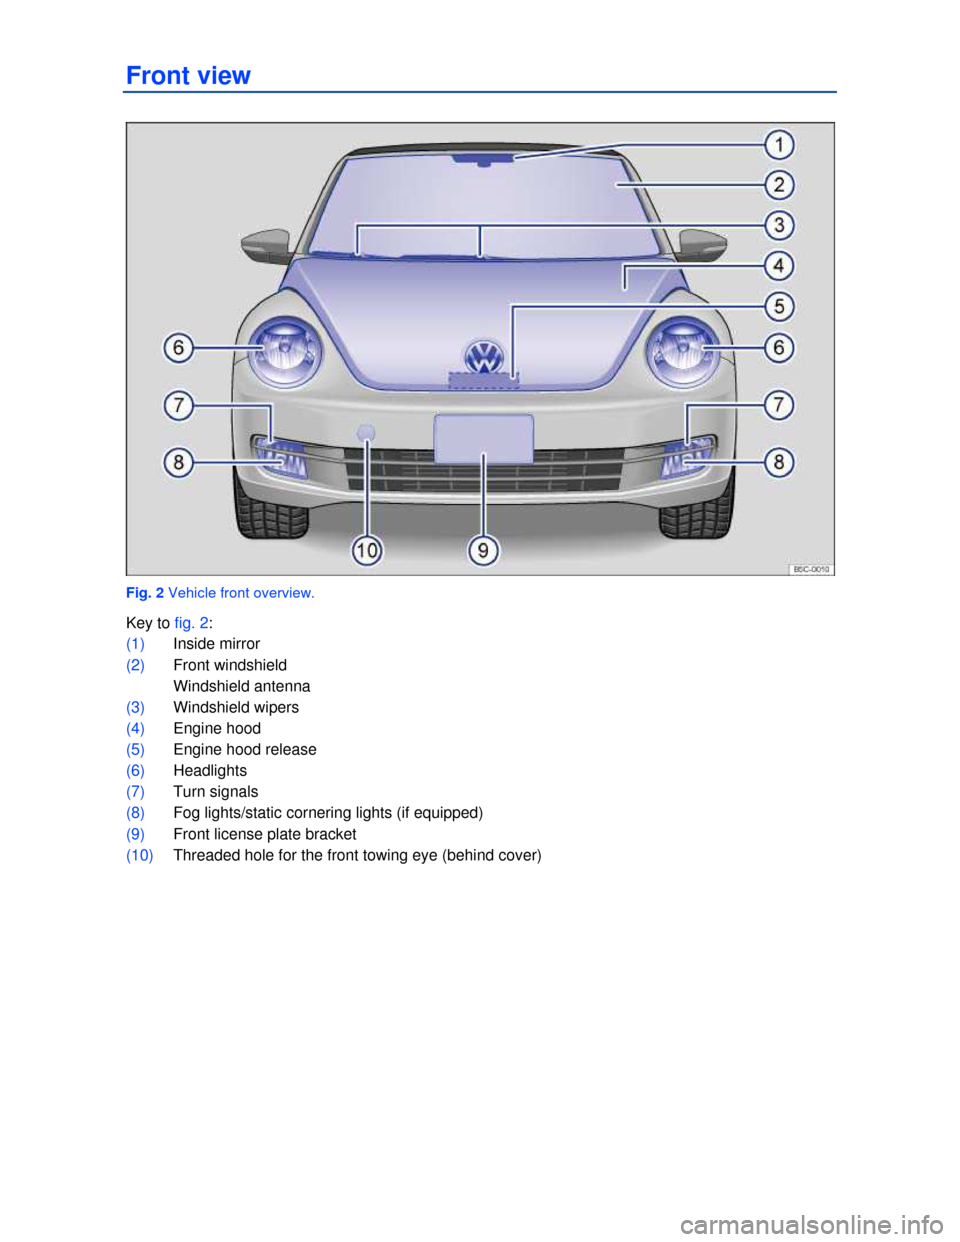 VOLKSWAGEN BEETLE CONVERTIBLE 2013 3.G Owners Manual   Front view    Fig. 2 Vehicle front overview.  Key to fig. 2:  (1) Inside mirror   (2) Front windshield   Windshield antenna   (3) Windshield wipers   (4) Engine hood   (5) Engine hood release   (6)